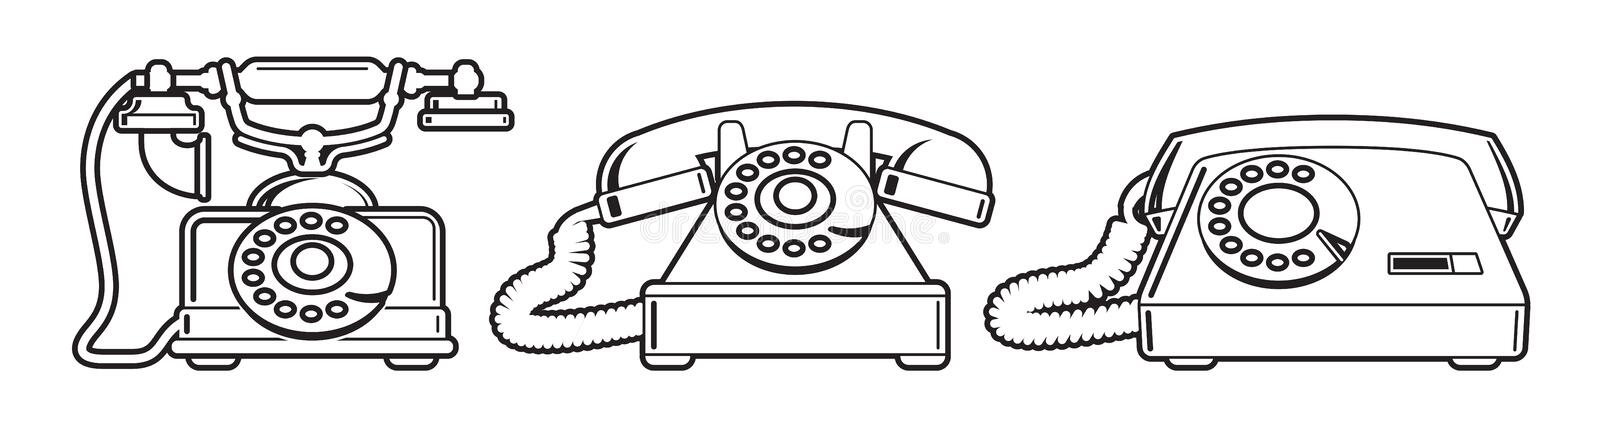 Old phones. Set of vintage phones from different periods stock illustration